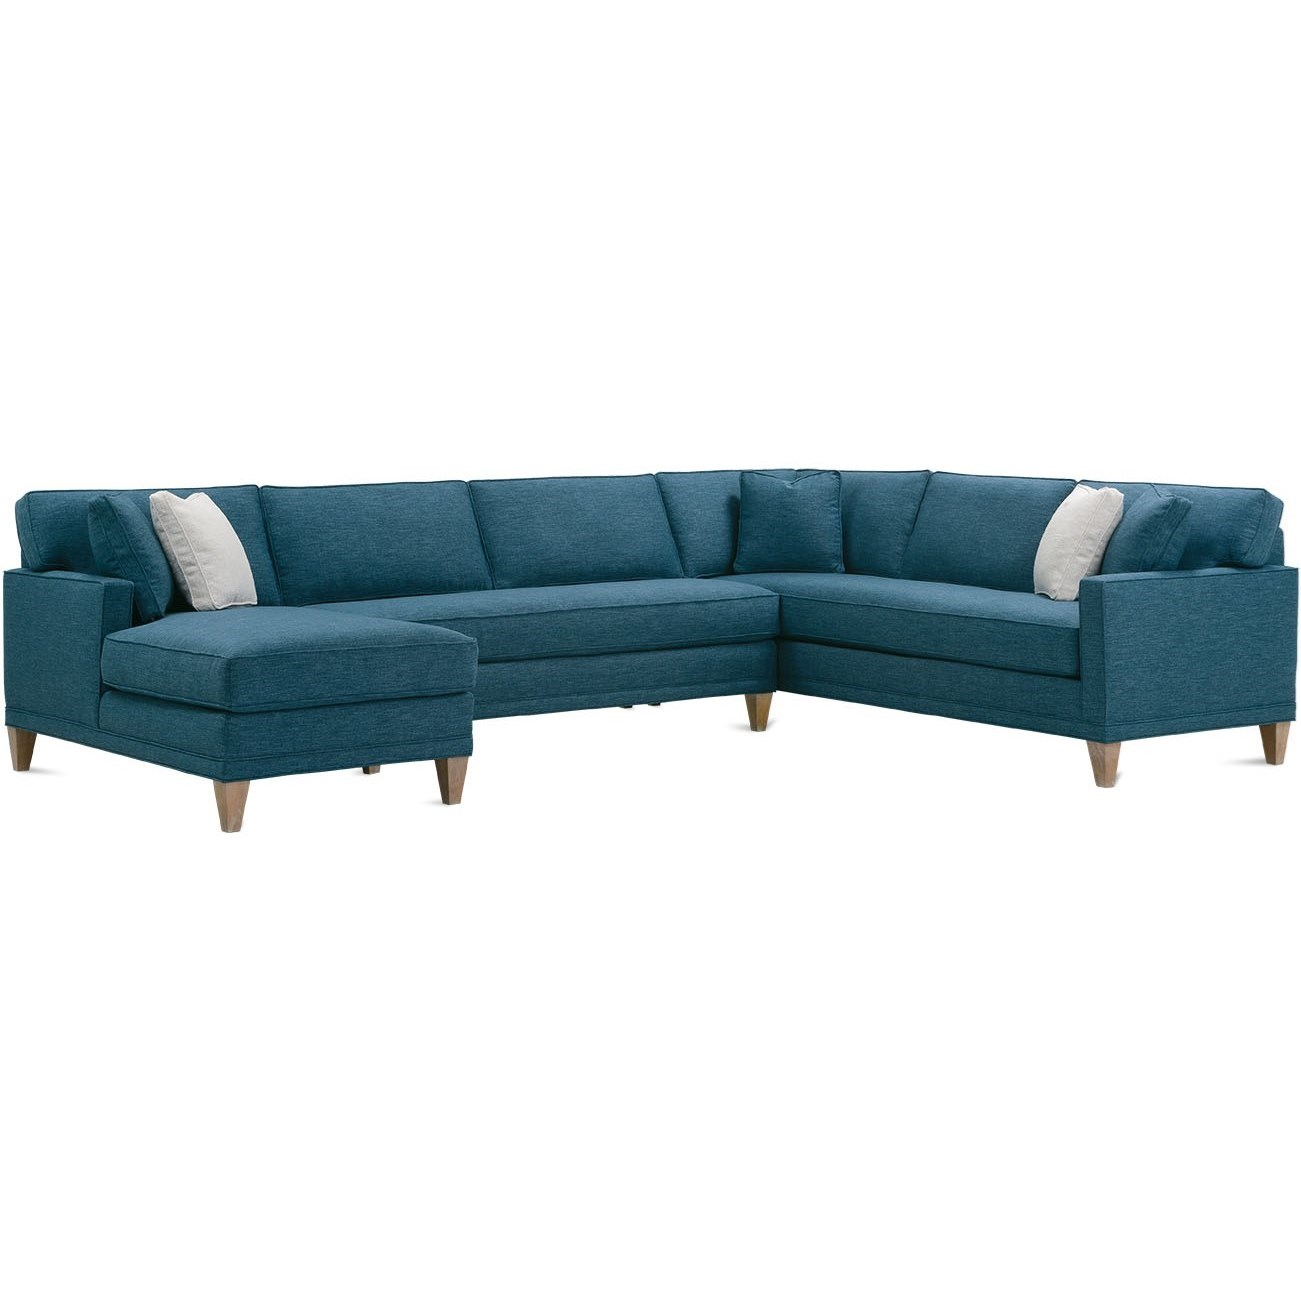 3-Piece Bench Cushion Sectional